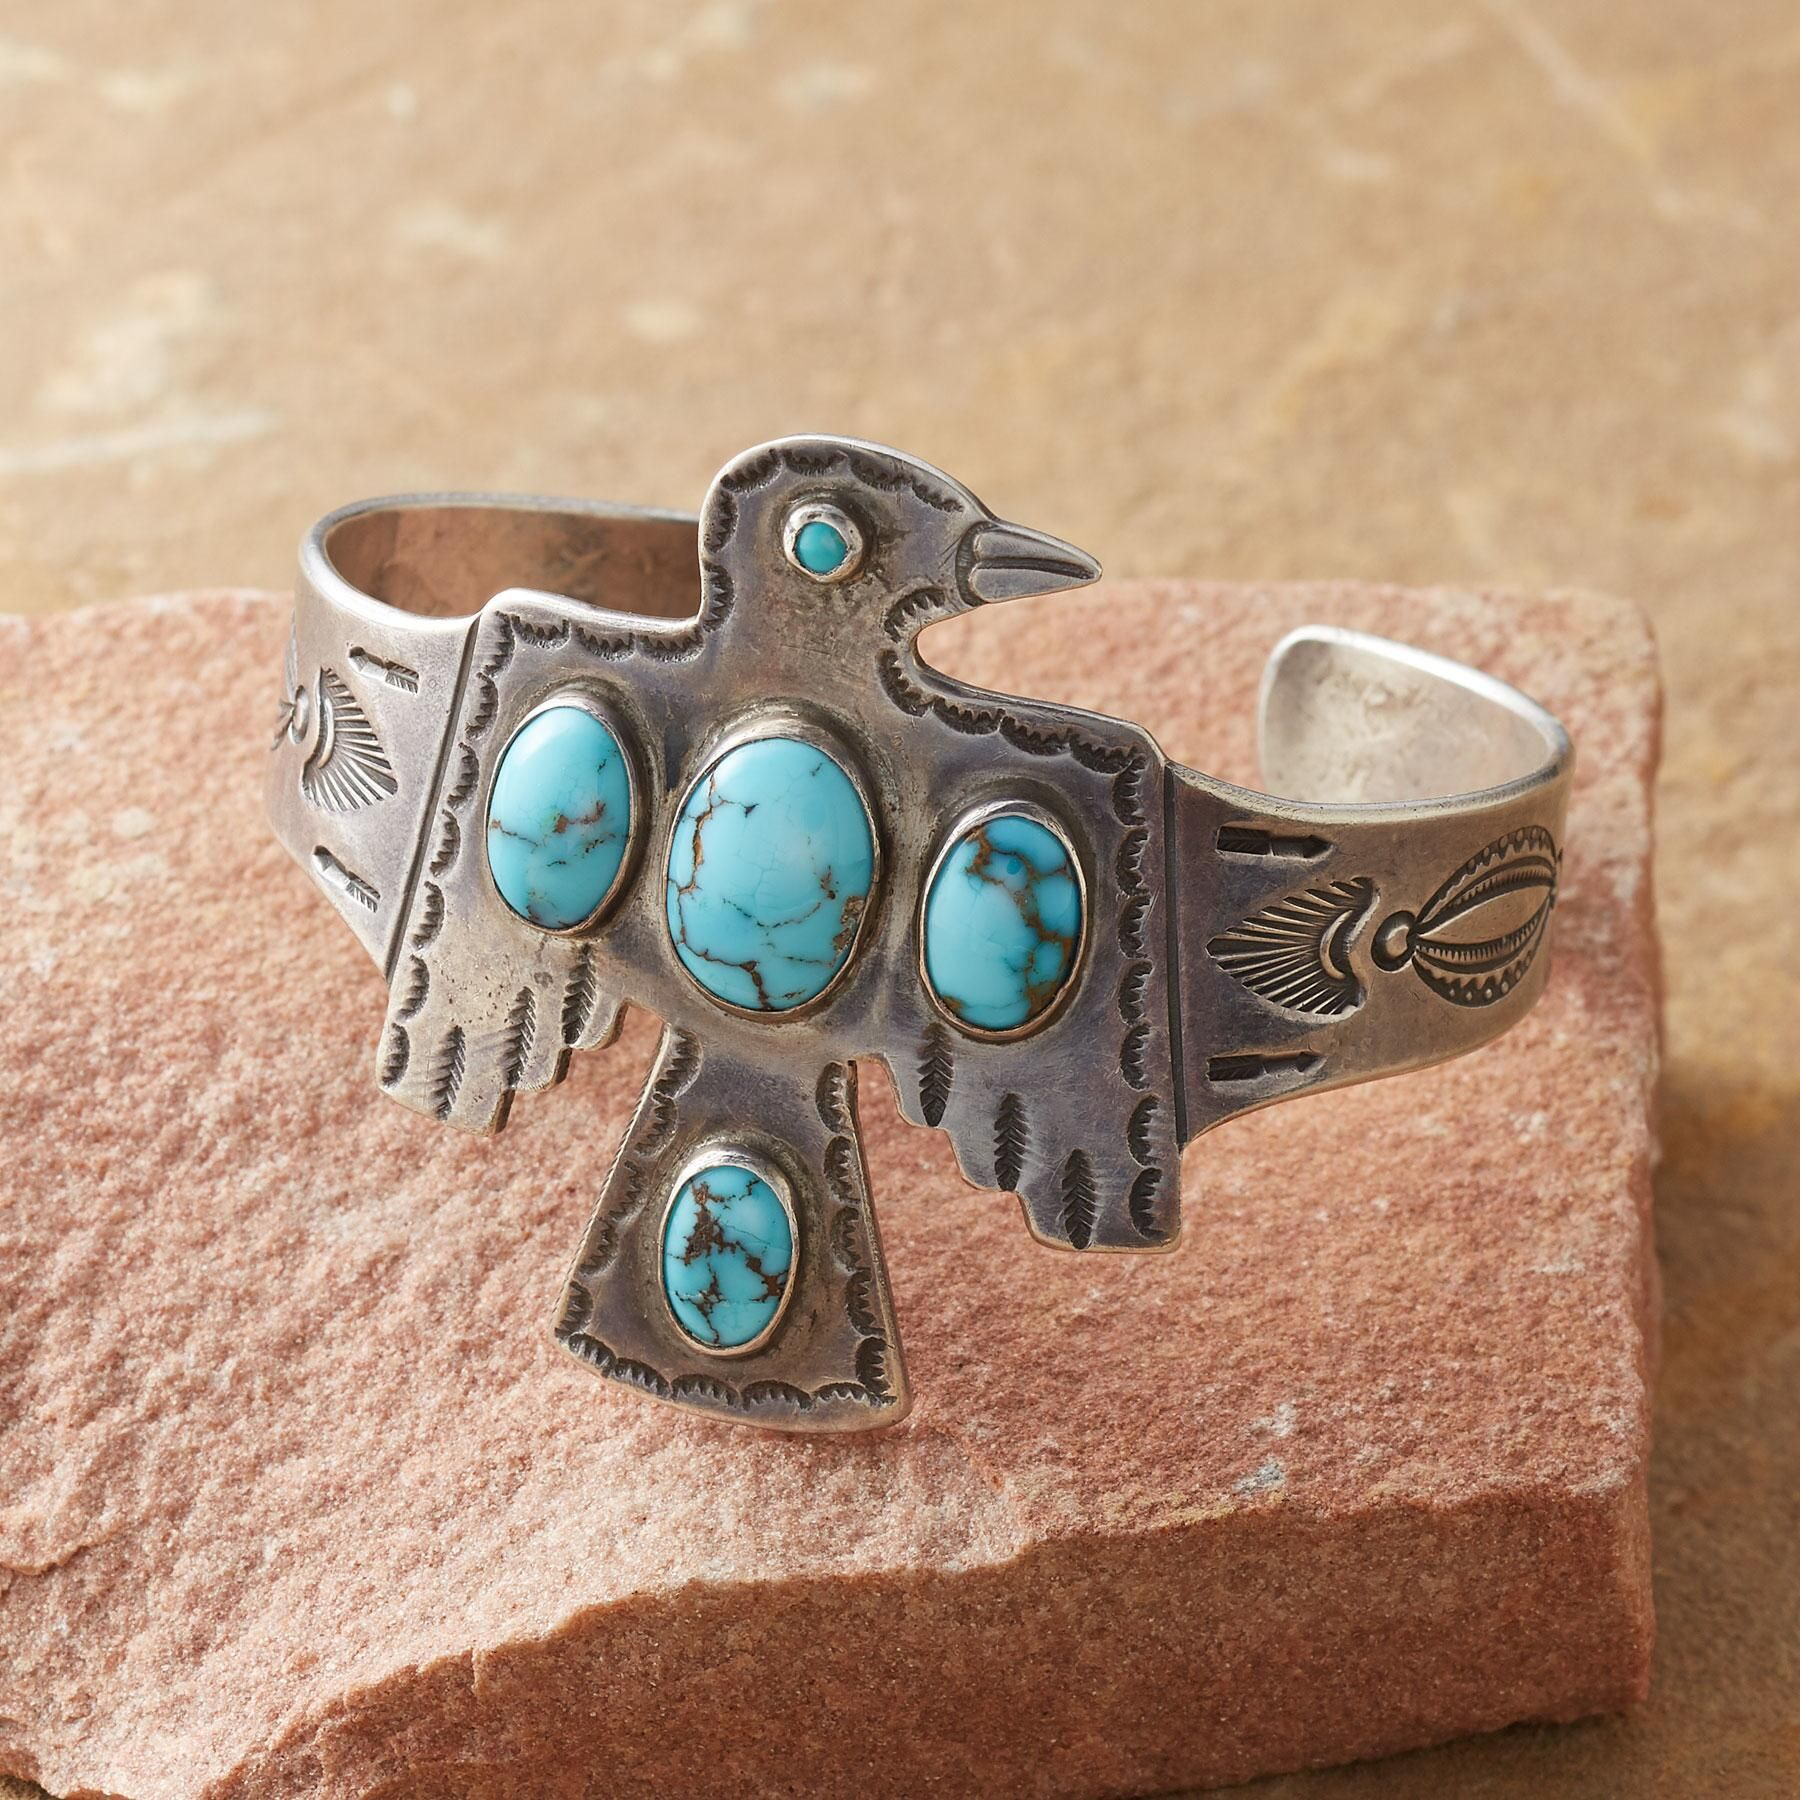 1930s thunderbird cuff burnished by time this navajo sterling 1930s thunderbird cuff burnished by time this navajo sterling silver cuff features a buycottarizona Images